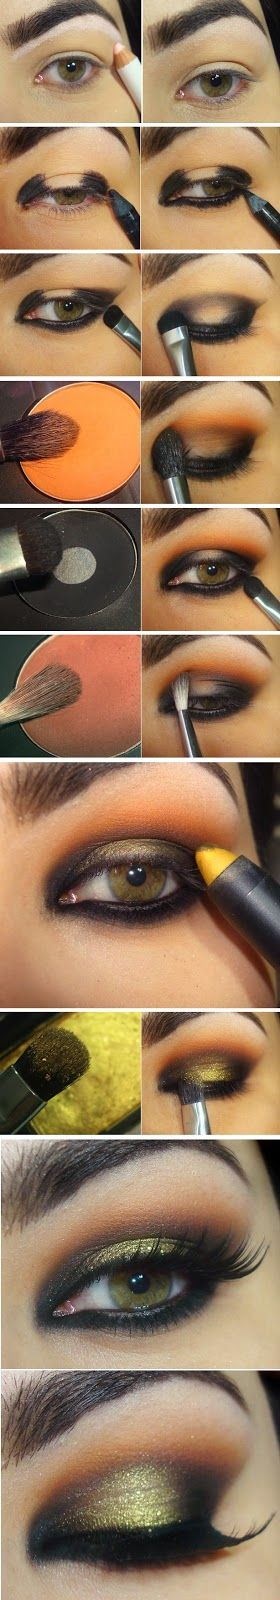 6 Most Glamorous Gold Smokey Eye Makeup Tutorials